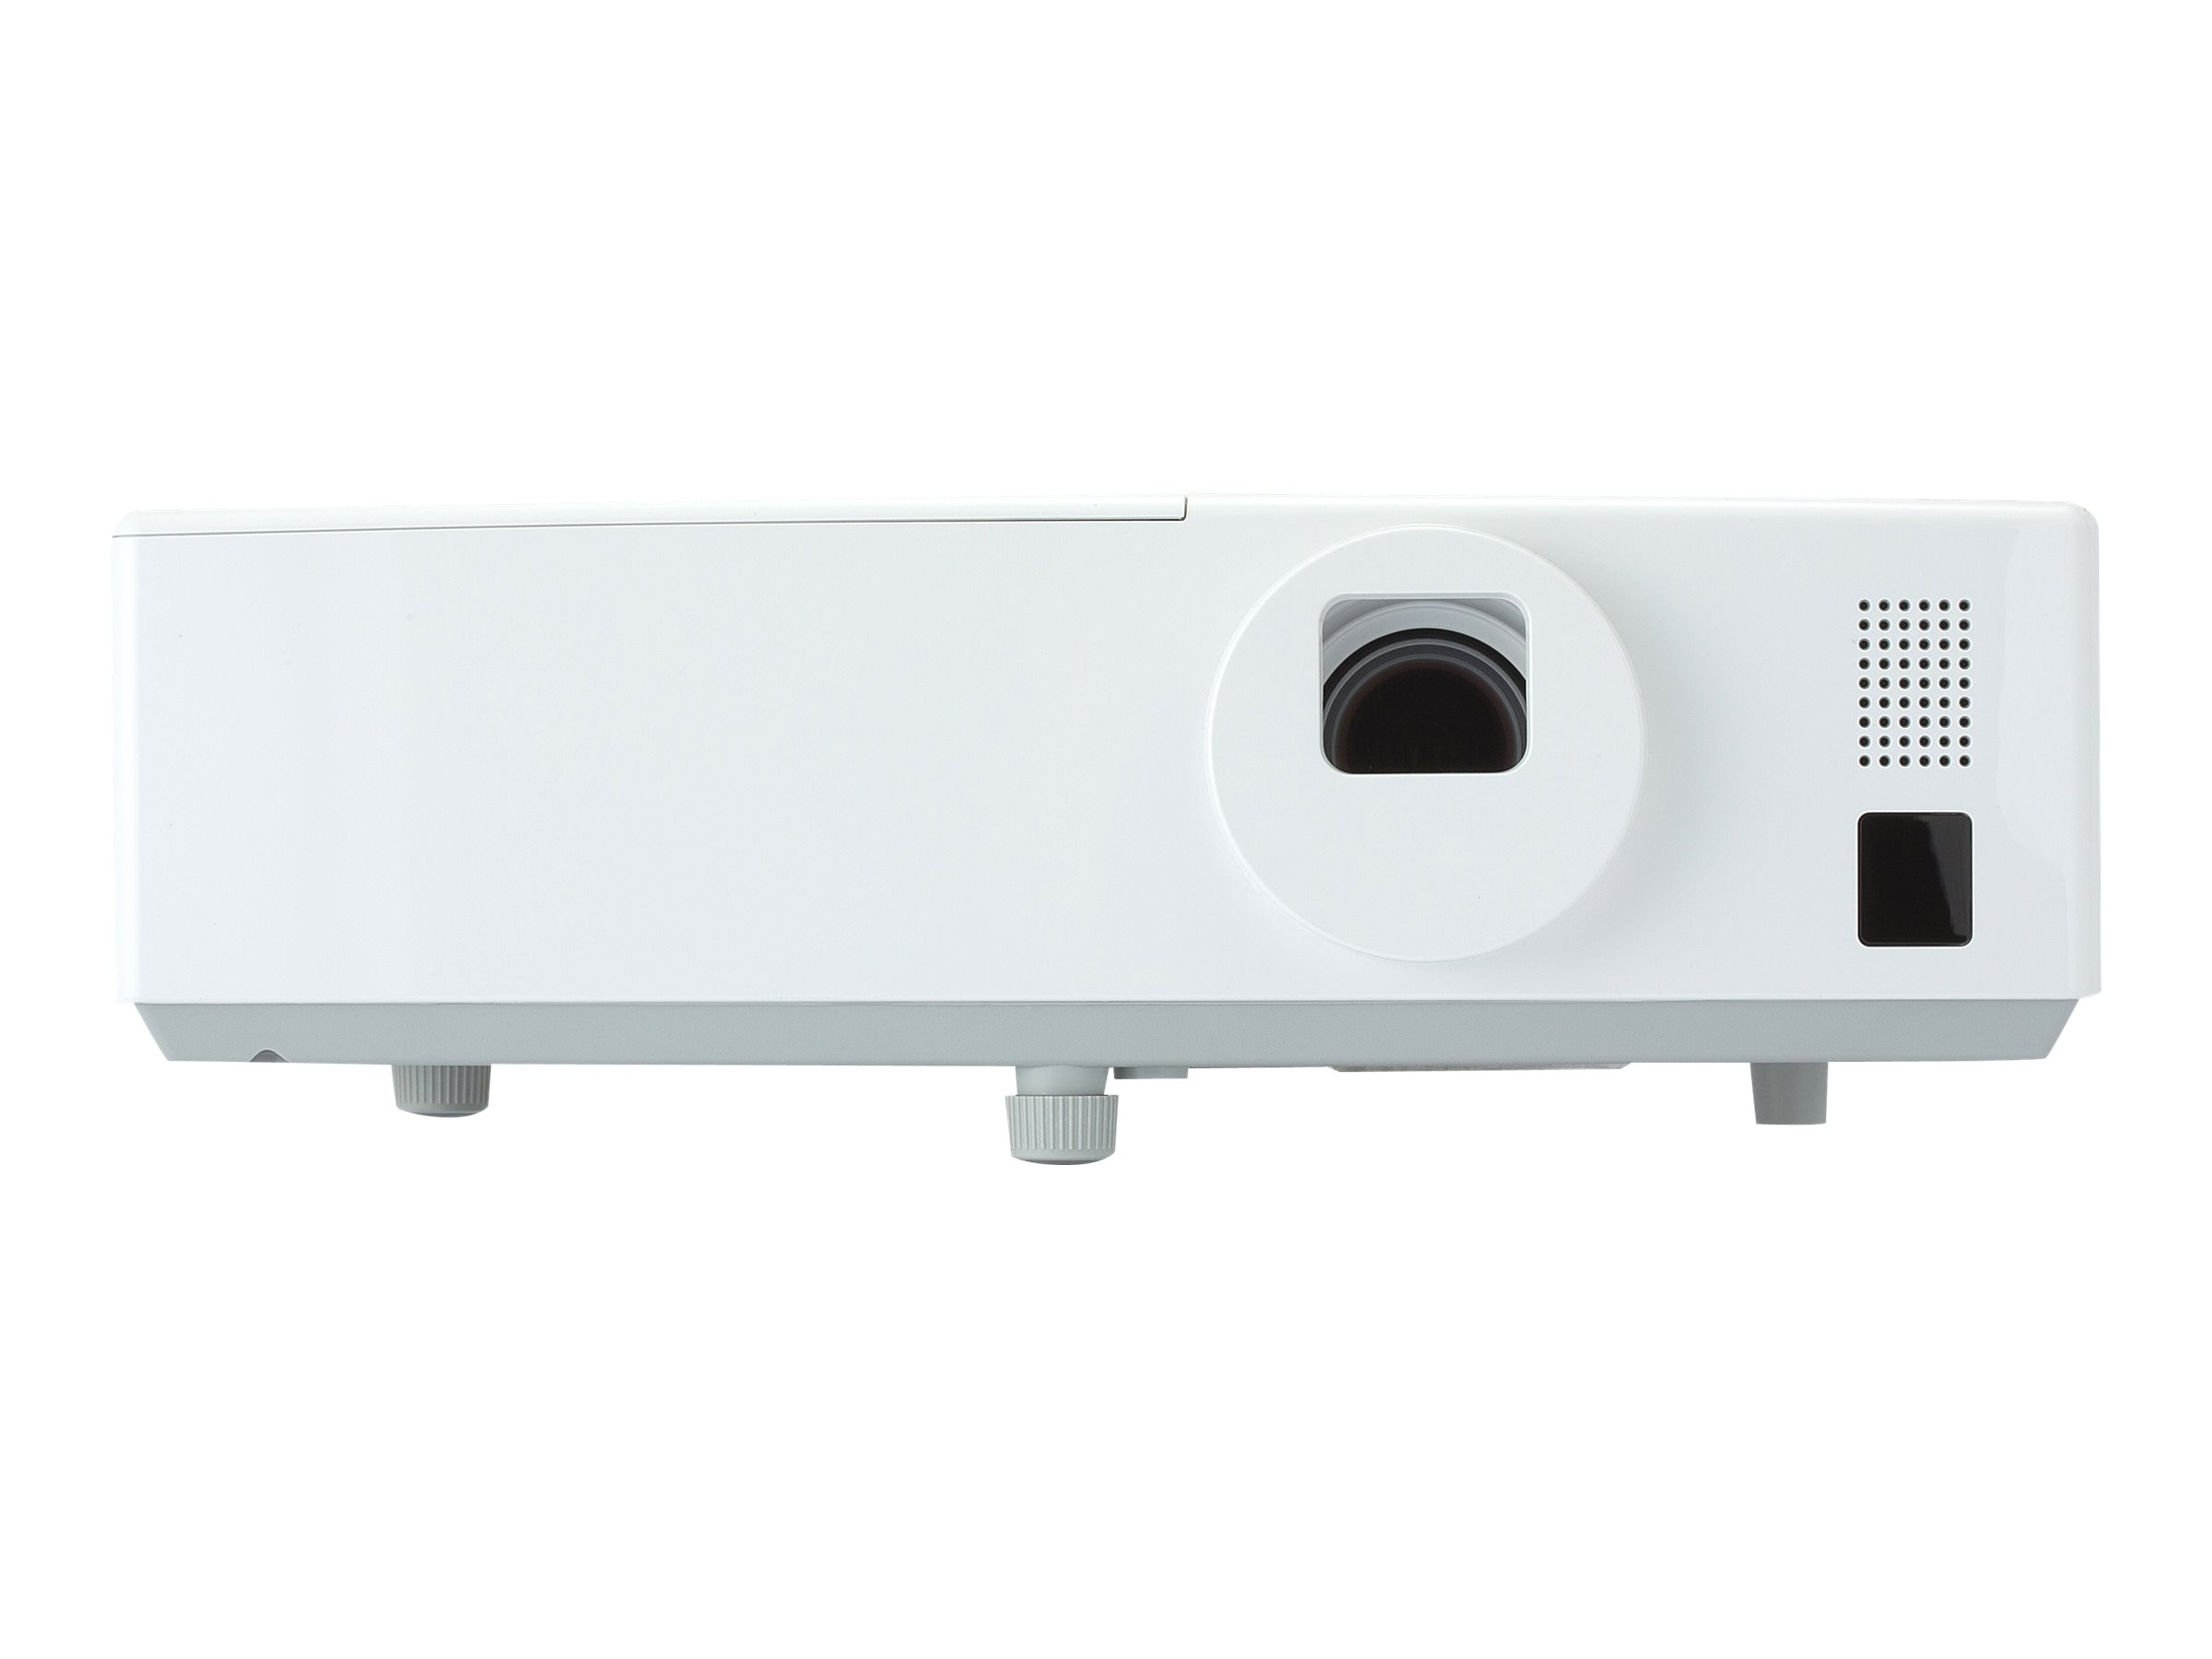 Hitachi CP-DX301 XGA DLP Projector, 3000 Lumens, White, CP-DX301, 30721386, Projectors